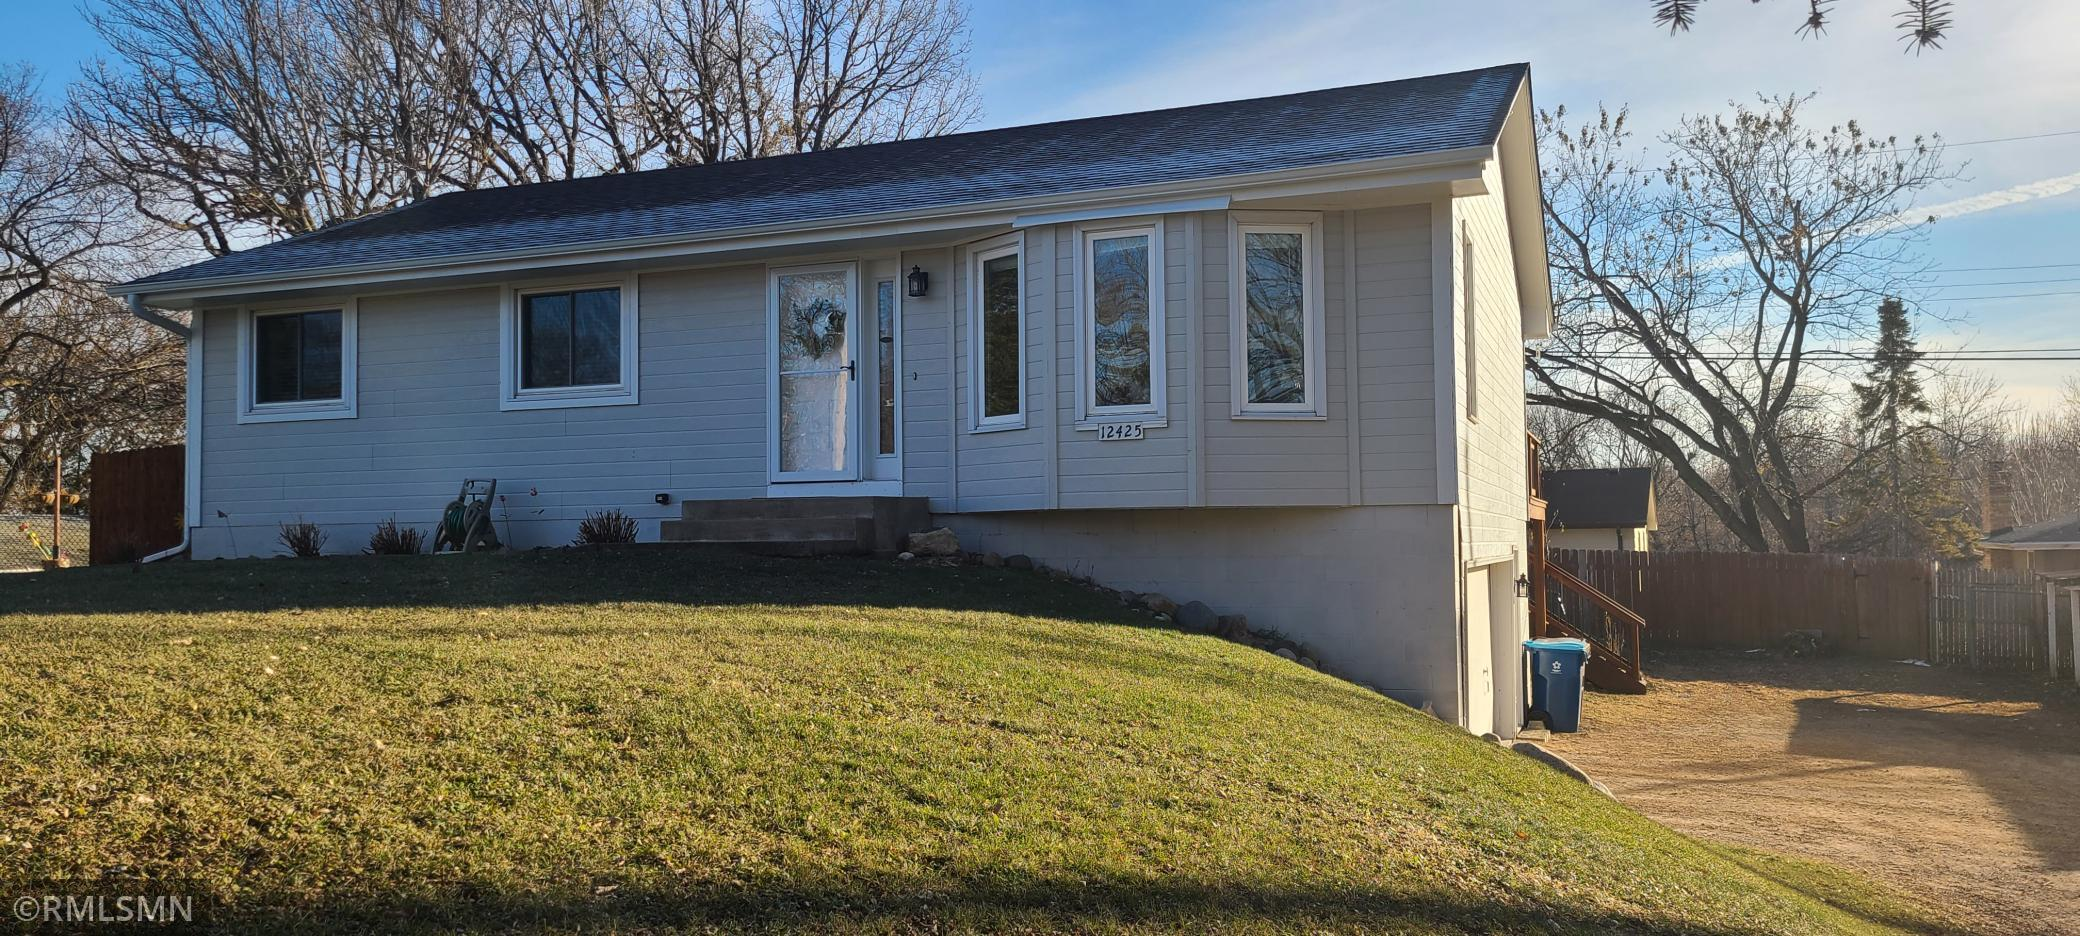 12425 26th Avenue N Property Photo - Plymouth, MN real estate listing